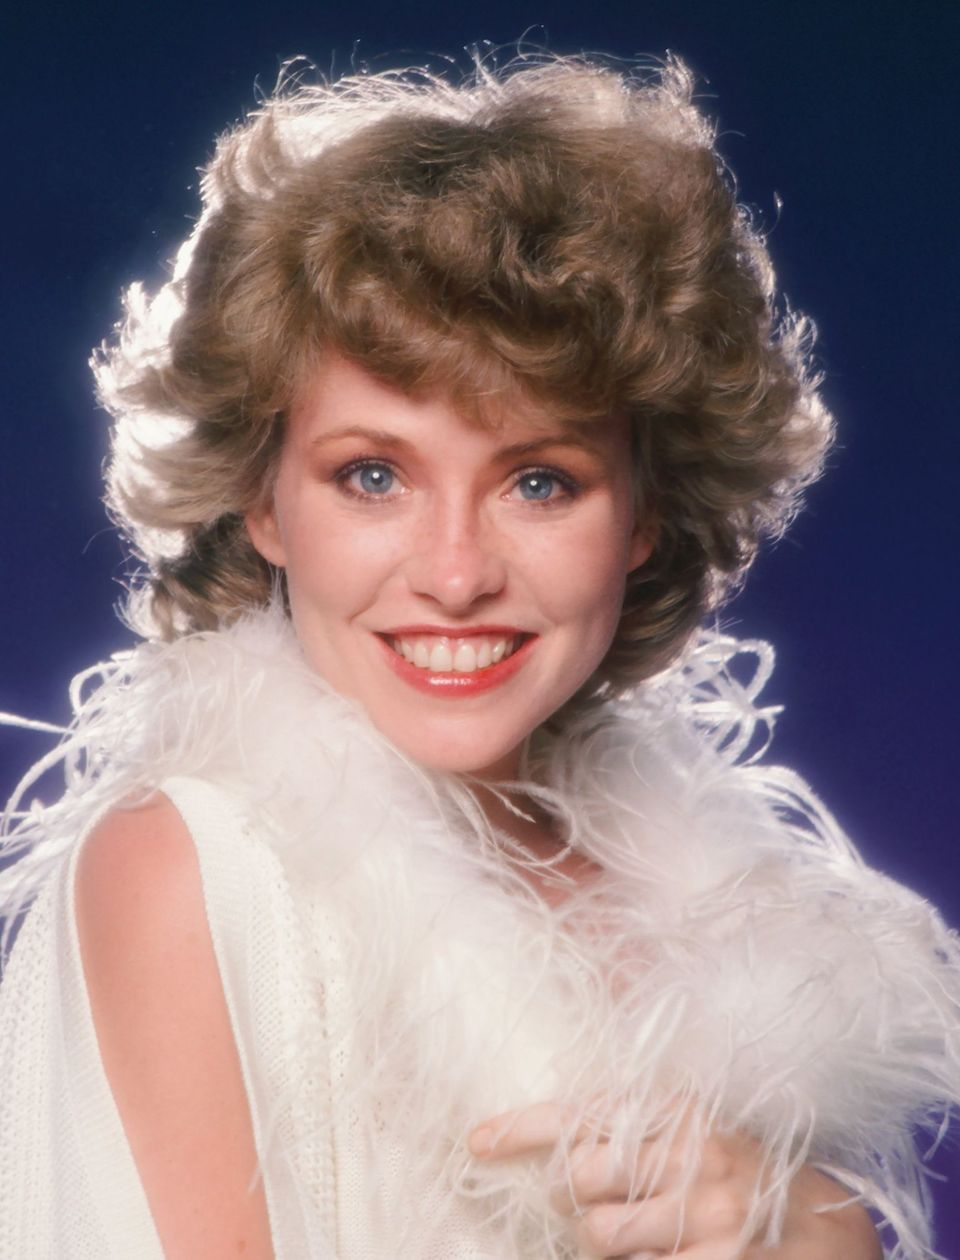 Lauren Tewes poses for a portrait in 1983 in Los Angeles, California. | Source: Getty Imagse